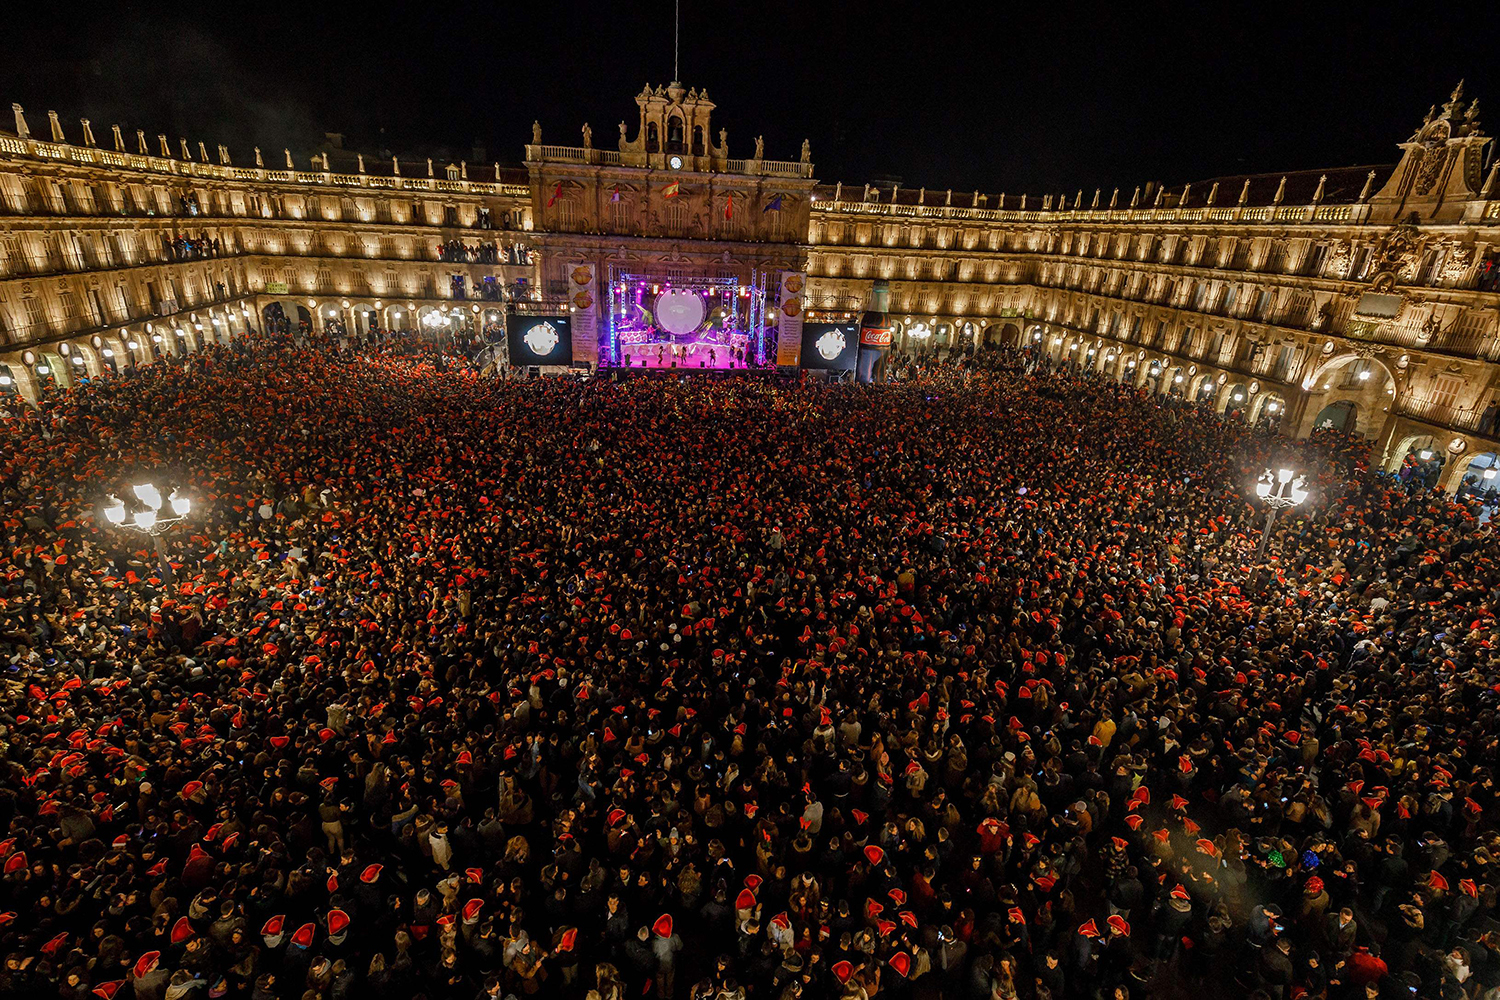 TOPSHOT - Students celebrate during the traditional year-end party held in the main square of Salamanca, Spain on December 15, 2016. The student end of year party has been celebrated every year since the 1990s in the main square of Salamanca in northern Spain, and this year's version drew 35,000 university students on December 15, 2016. / AFP PHOTO / CESAR MANSO / TT / kod 444